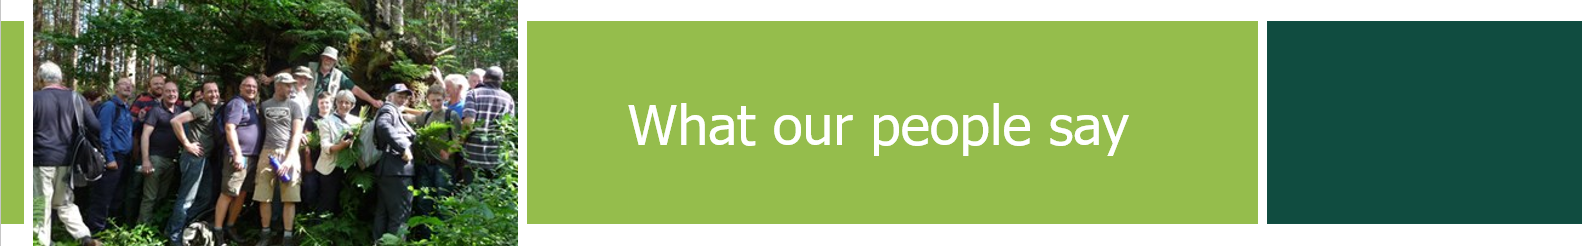 Woodland Trust: what our people say